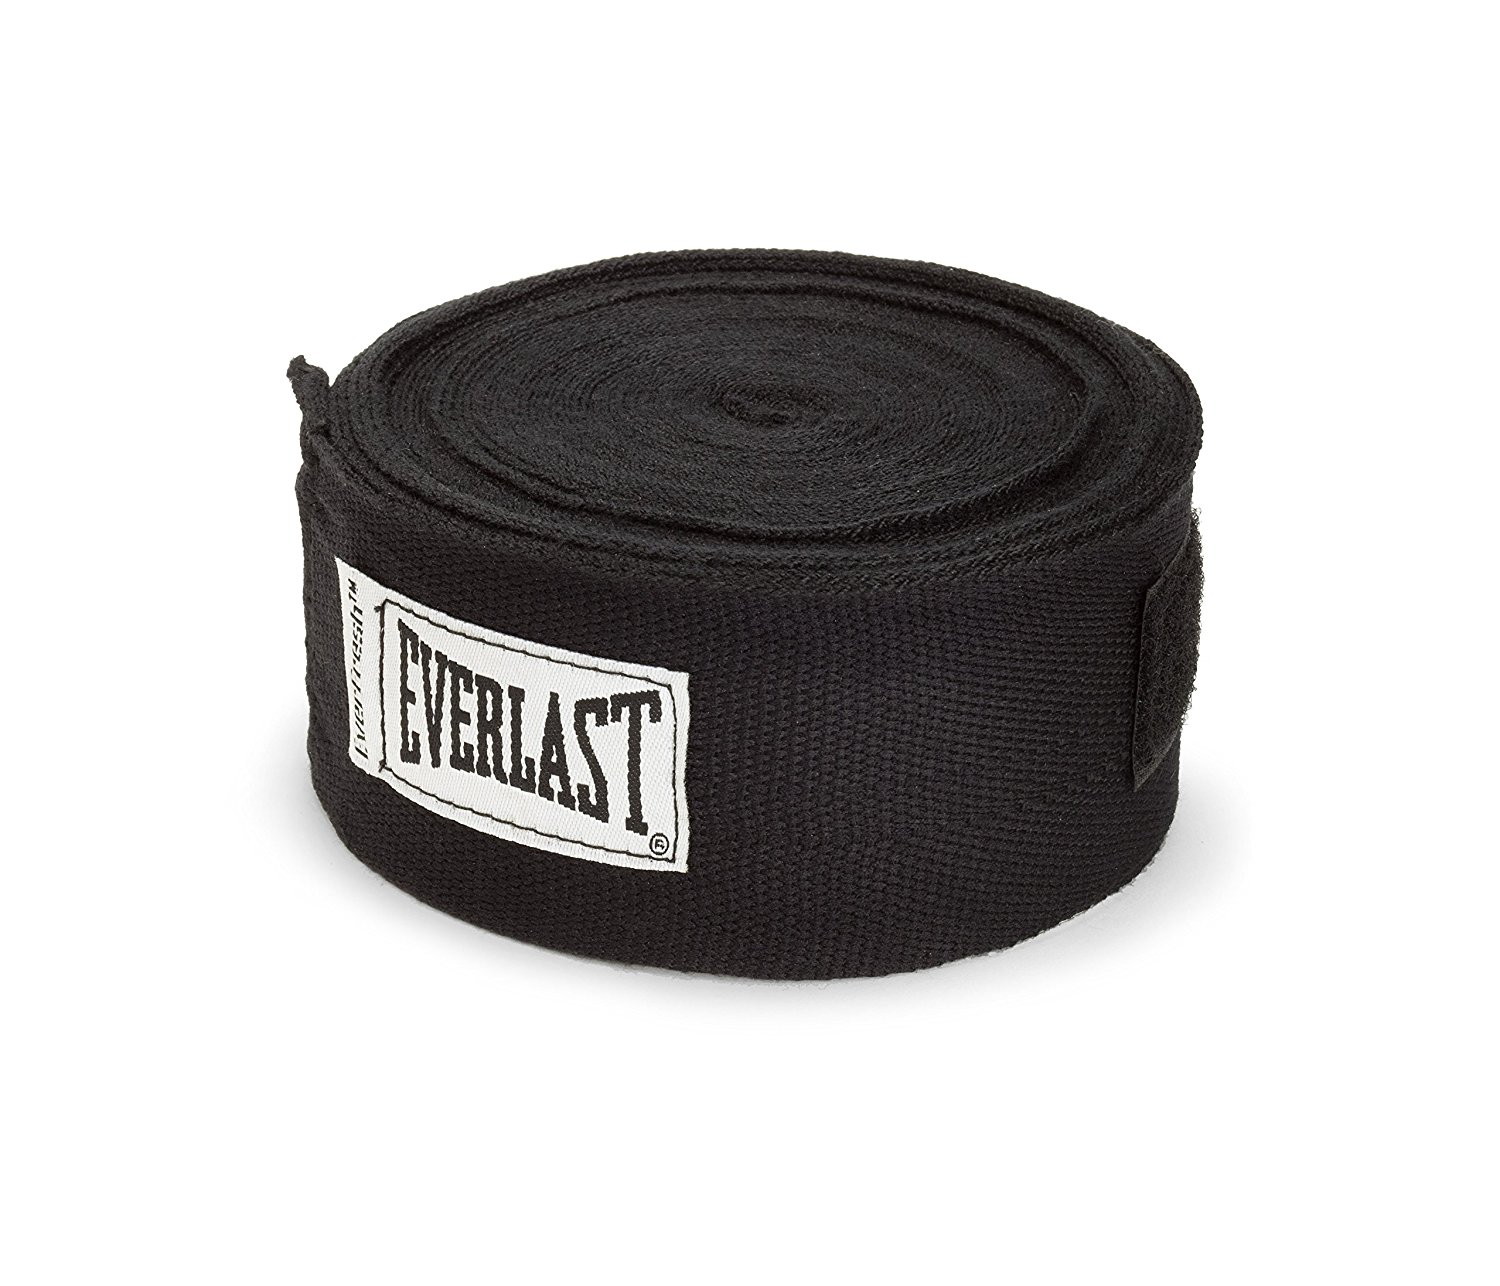 Everlast Professional Hand Wraps – Available in 2 Sizes and 9 Colors